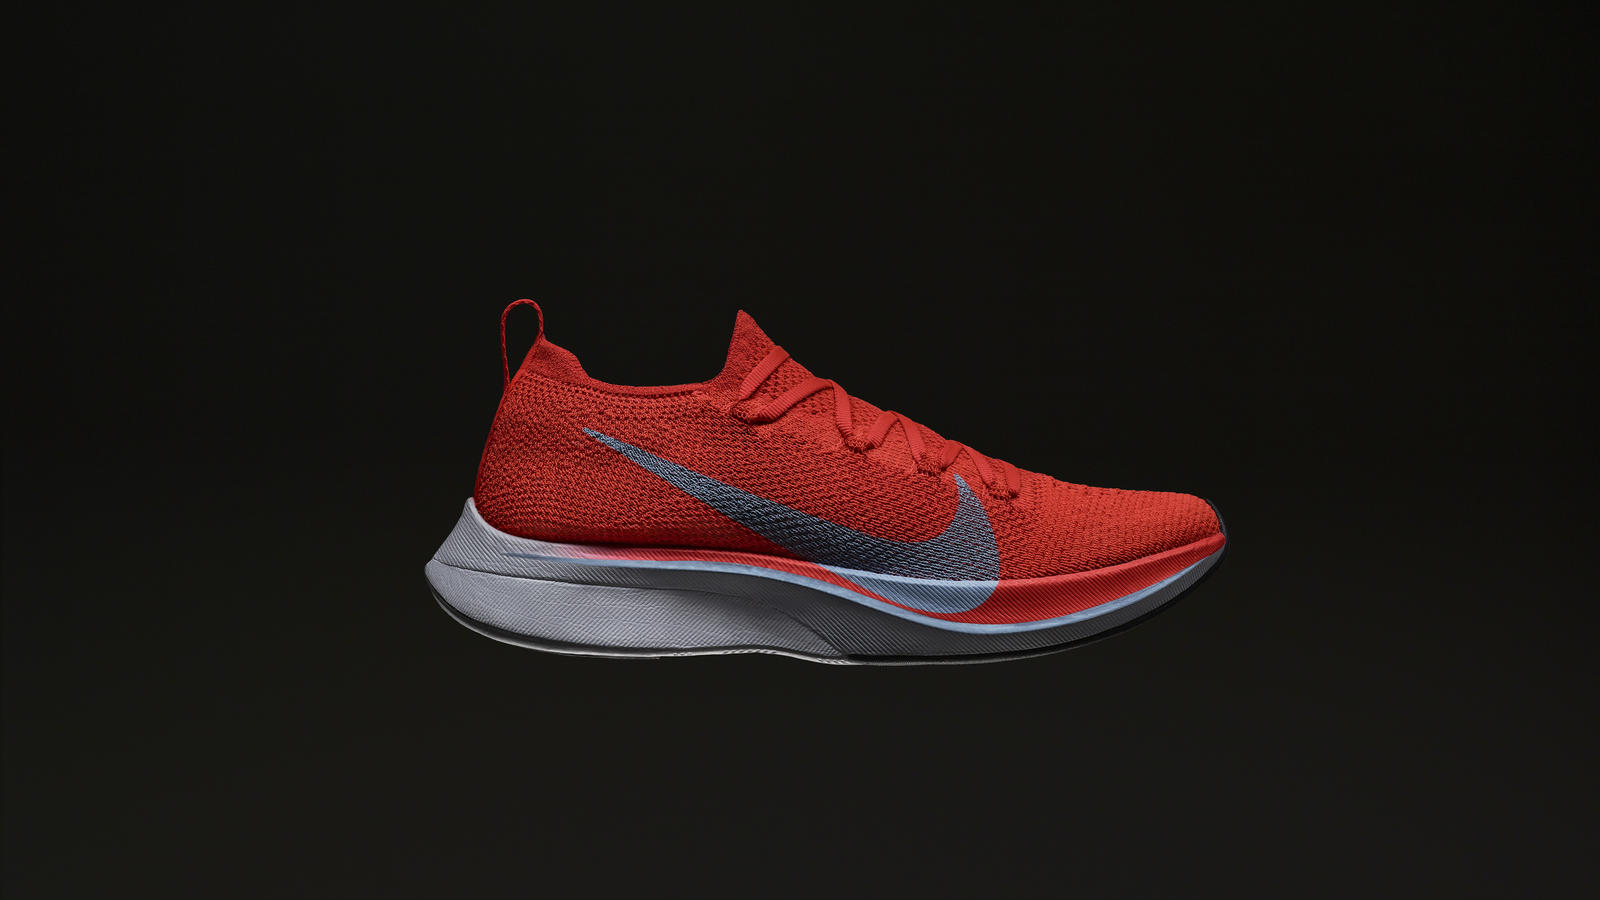 lowest price c4283 4eeb5 How to Get the Nike Zoom Vaporfly 4% 1